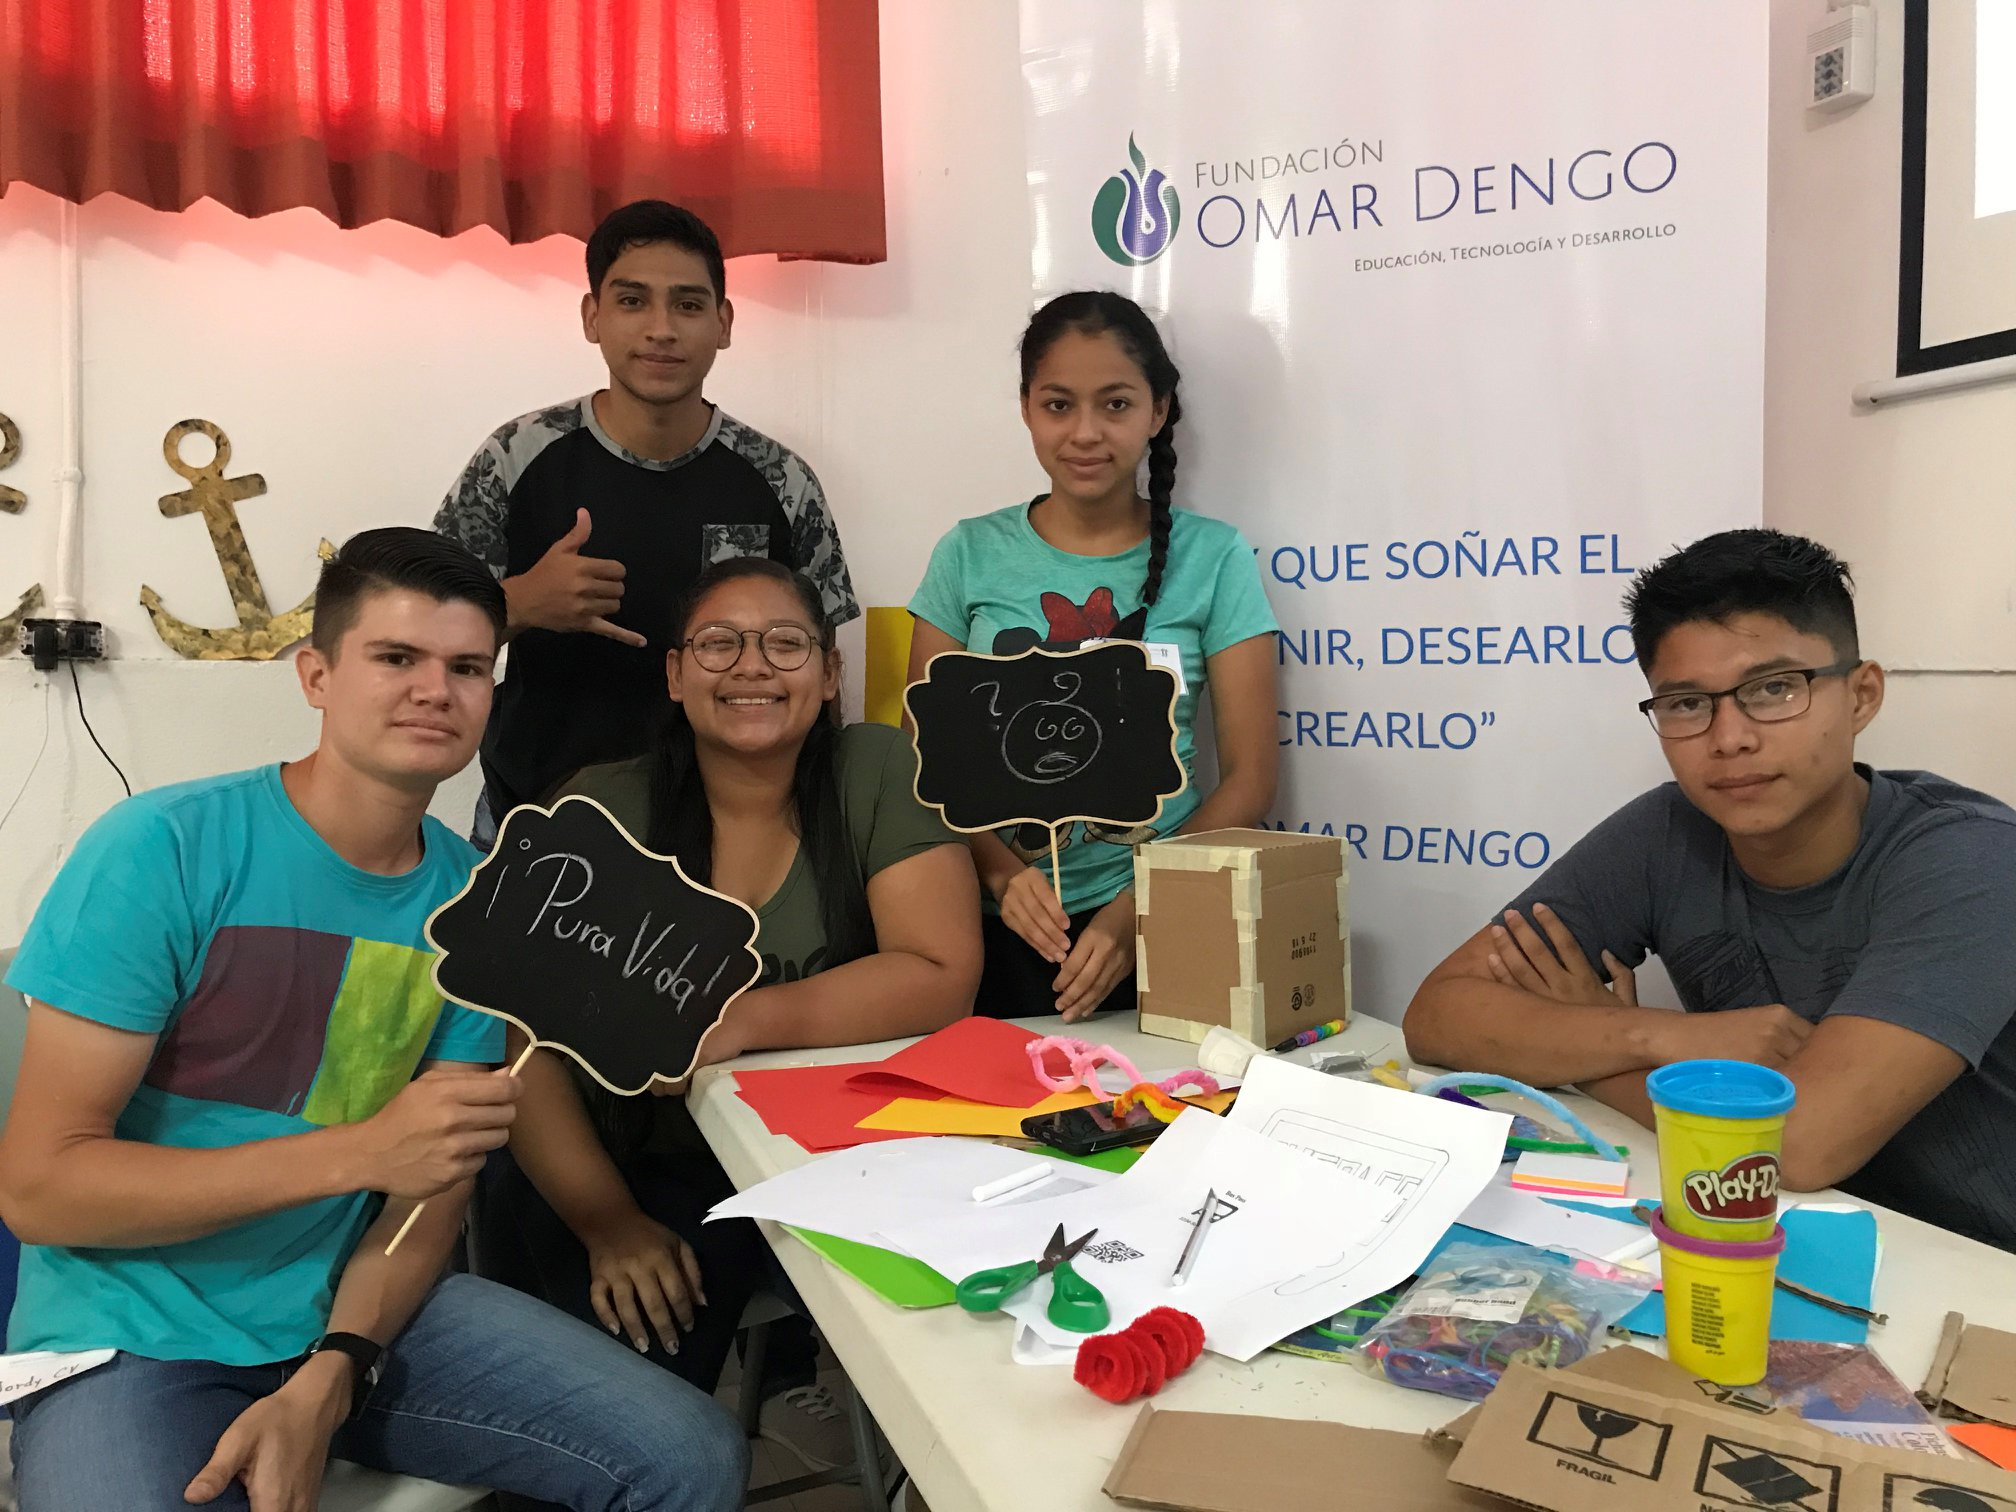 Students at a prototyping and tinkering workshop  in the Southern Pacific region of Costa Rica.